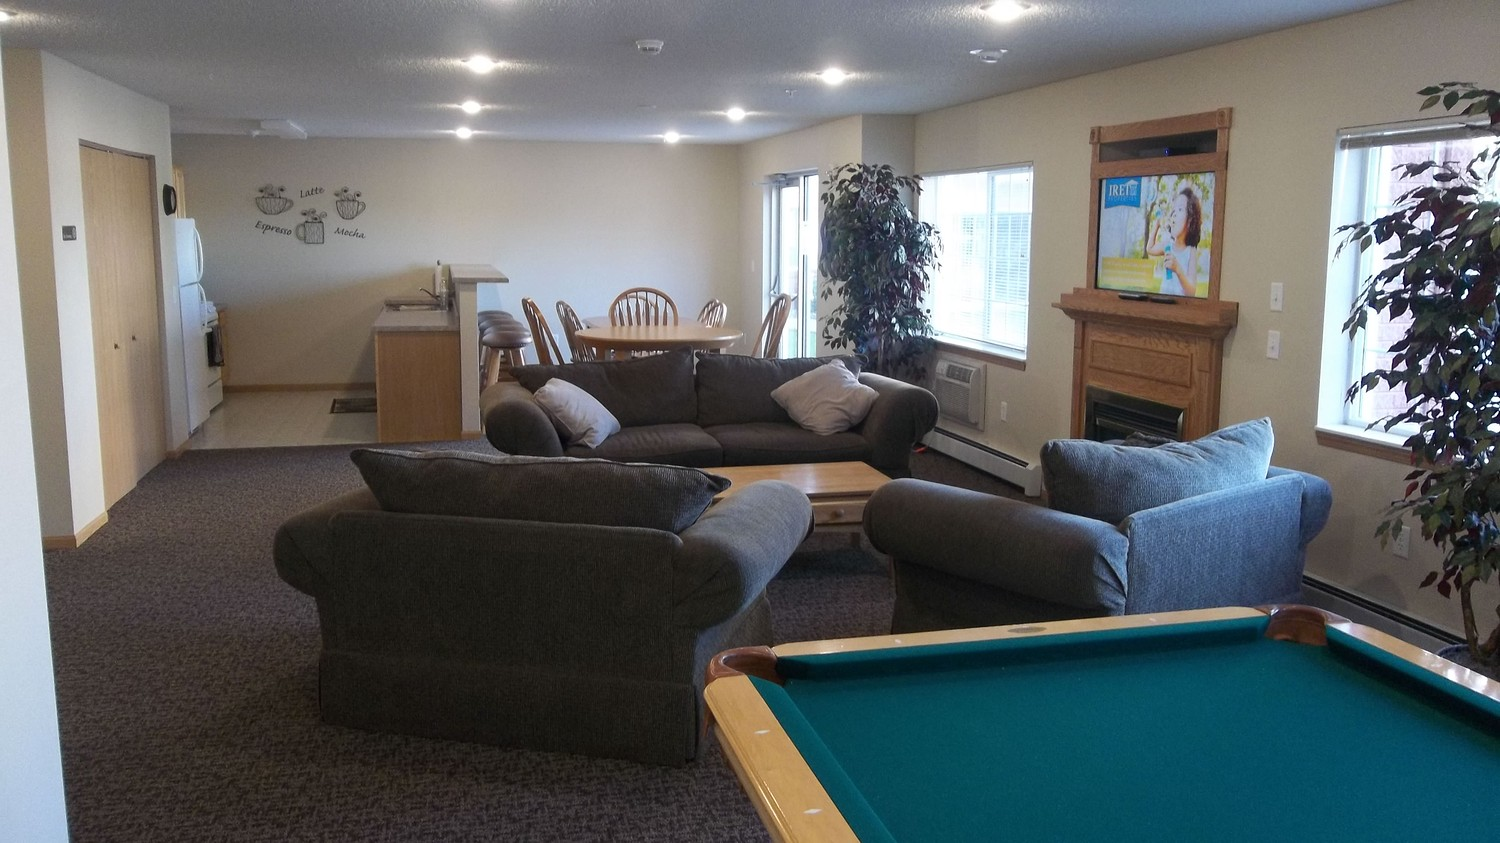 Grand-Gateway-Apartment-Homes-Community-room-equipped-with-TV-Pool-table.JPG